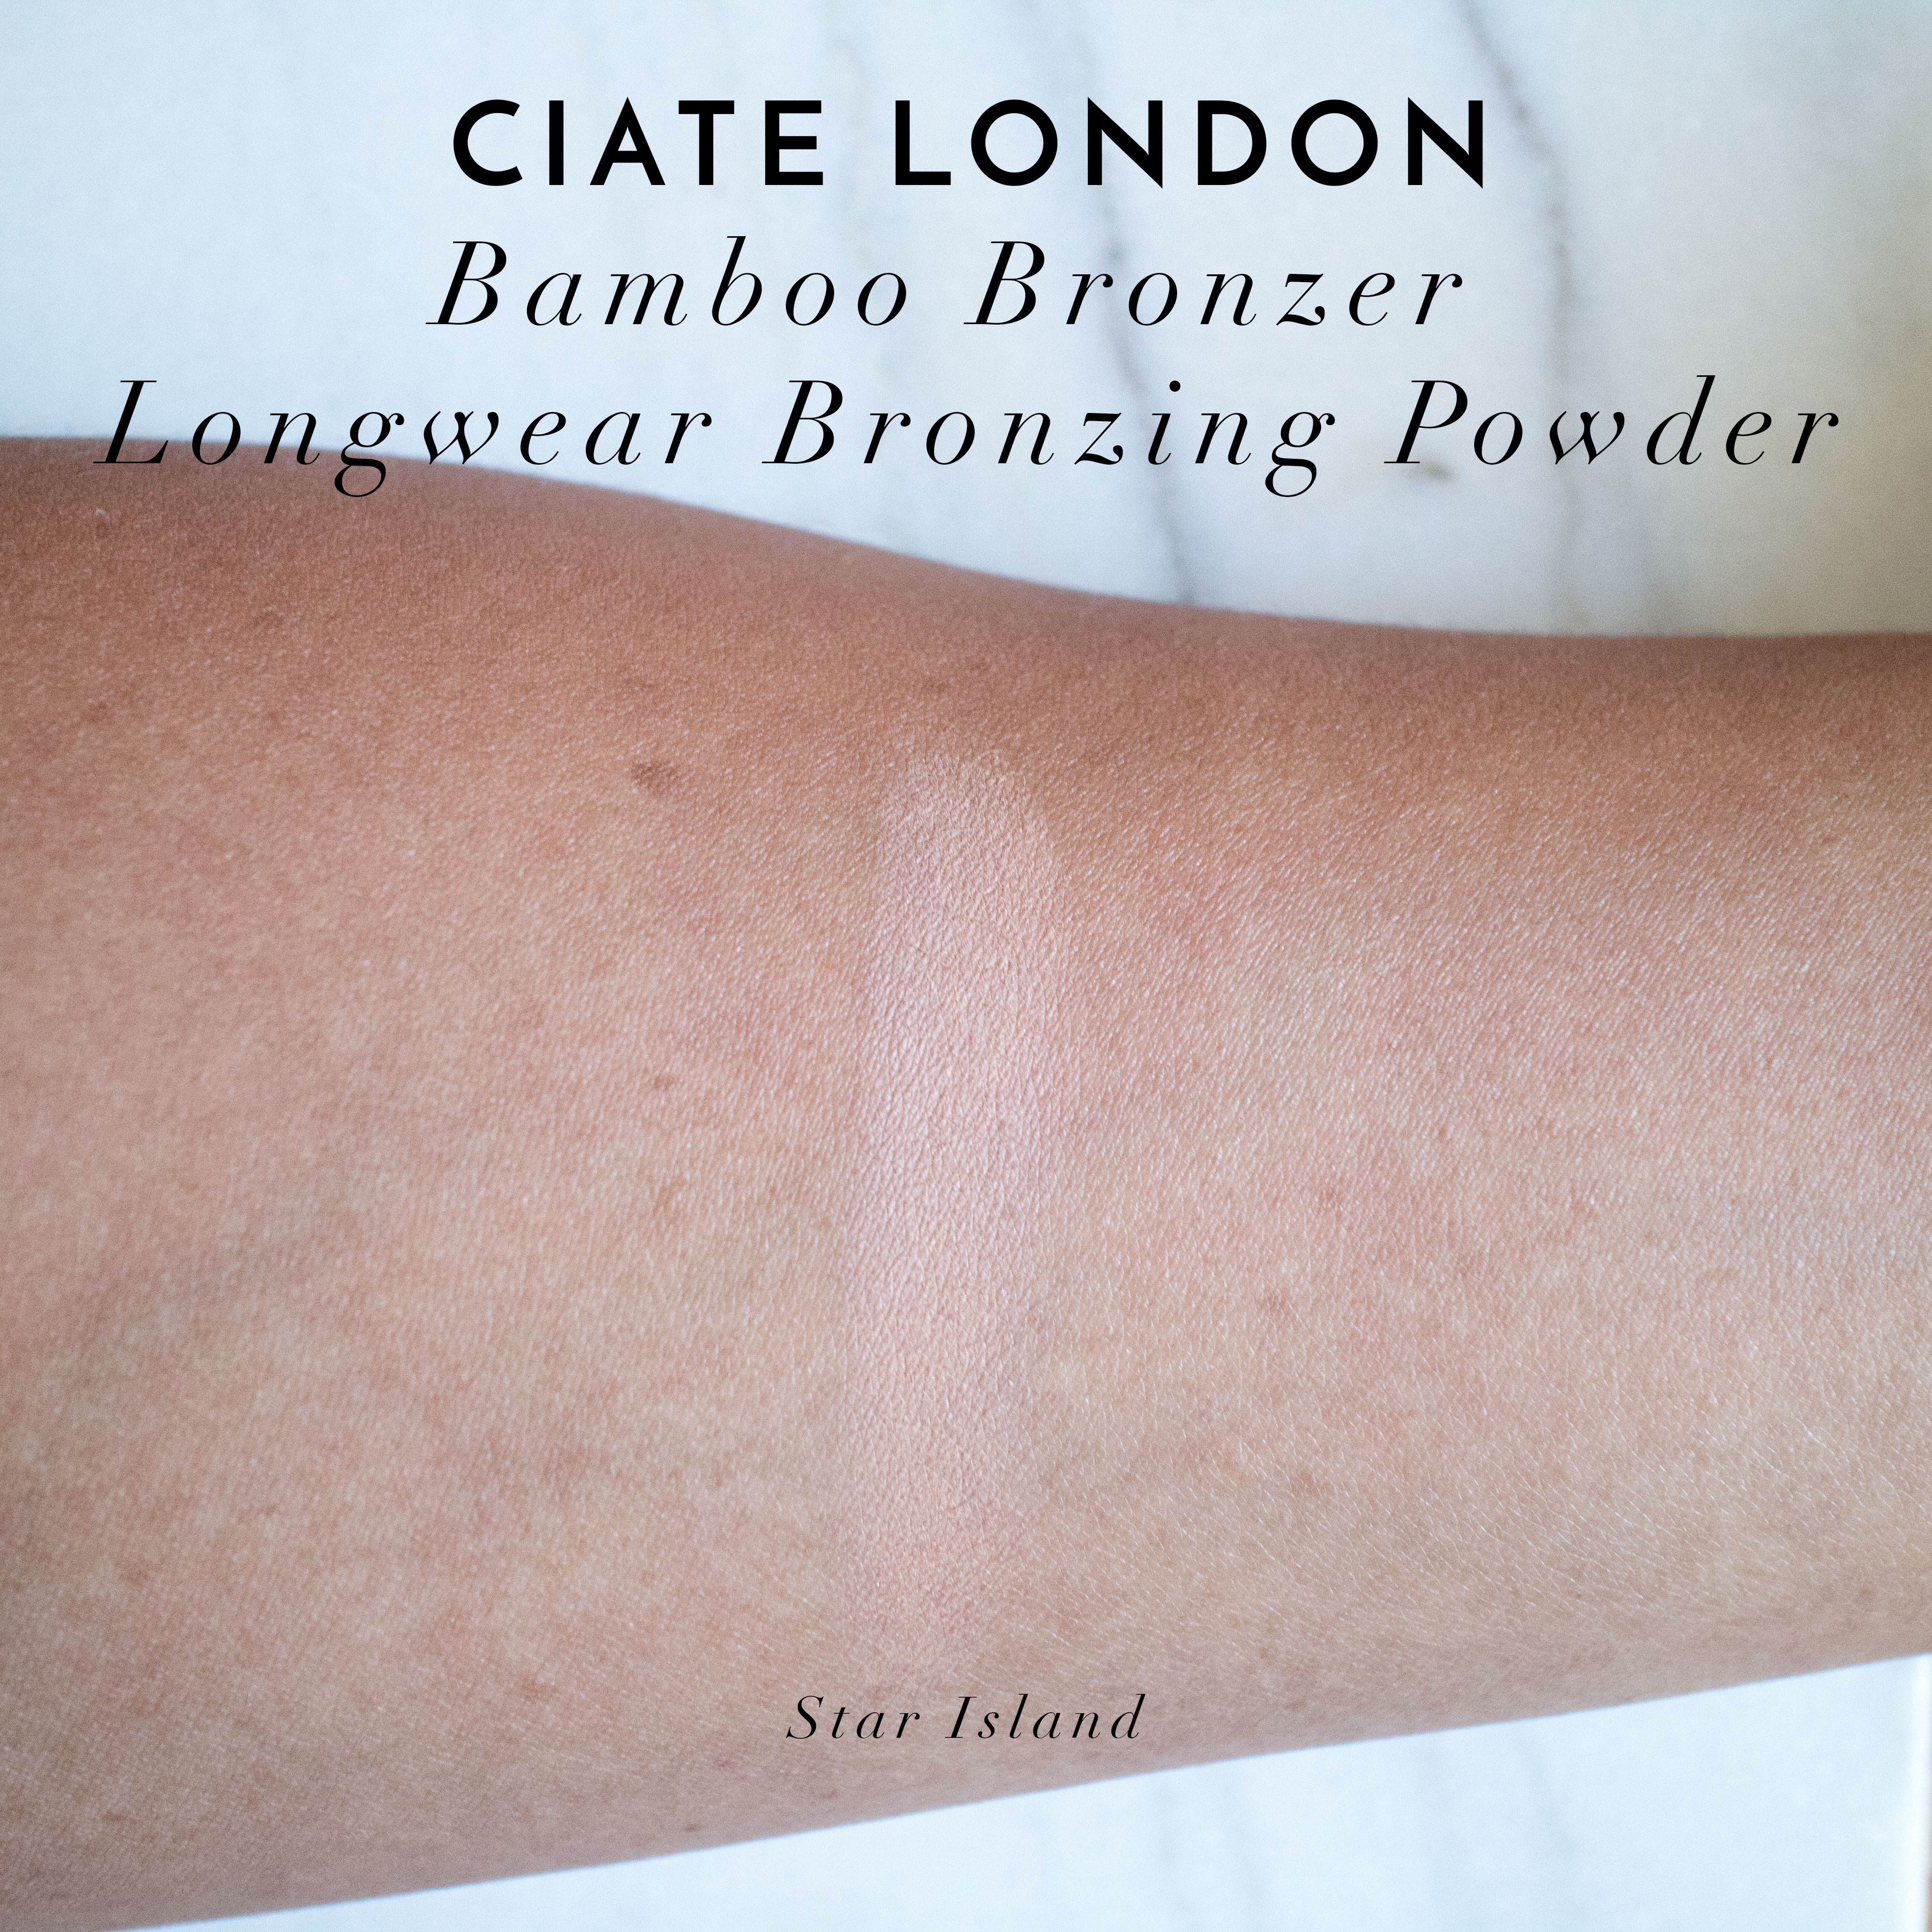 Bamboo Bronzer by Ciate London #5